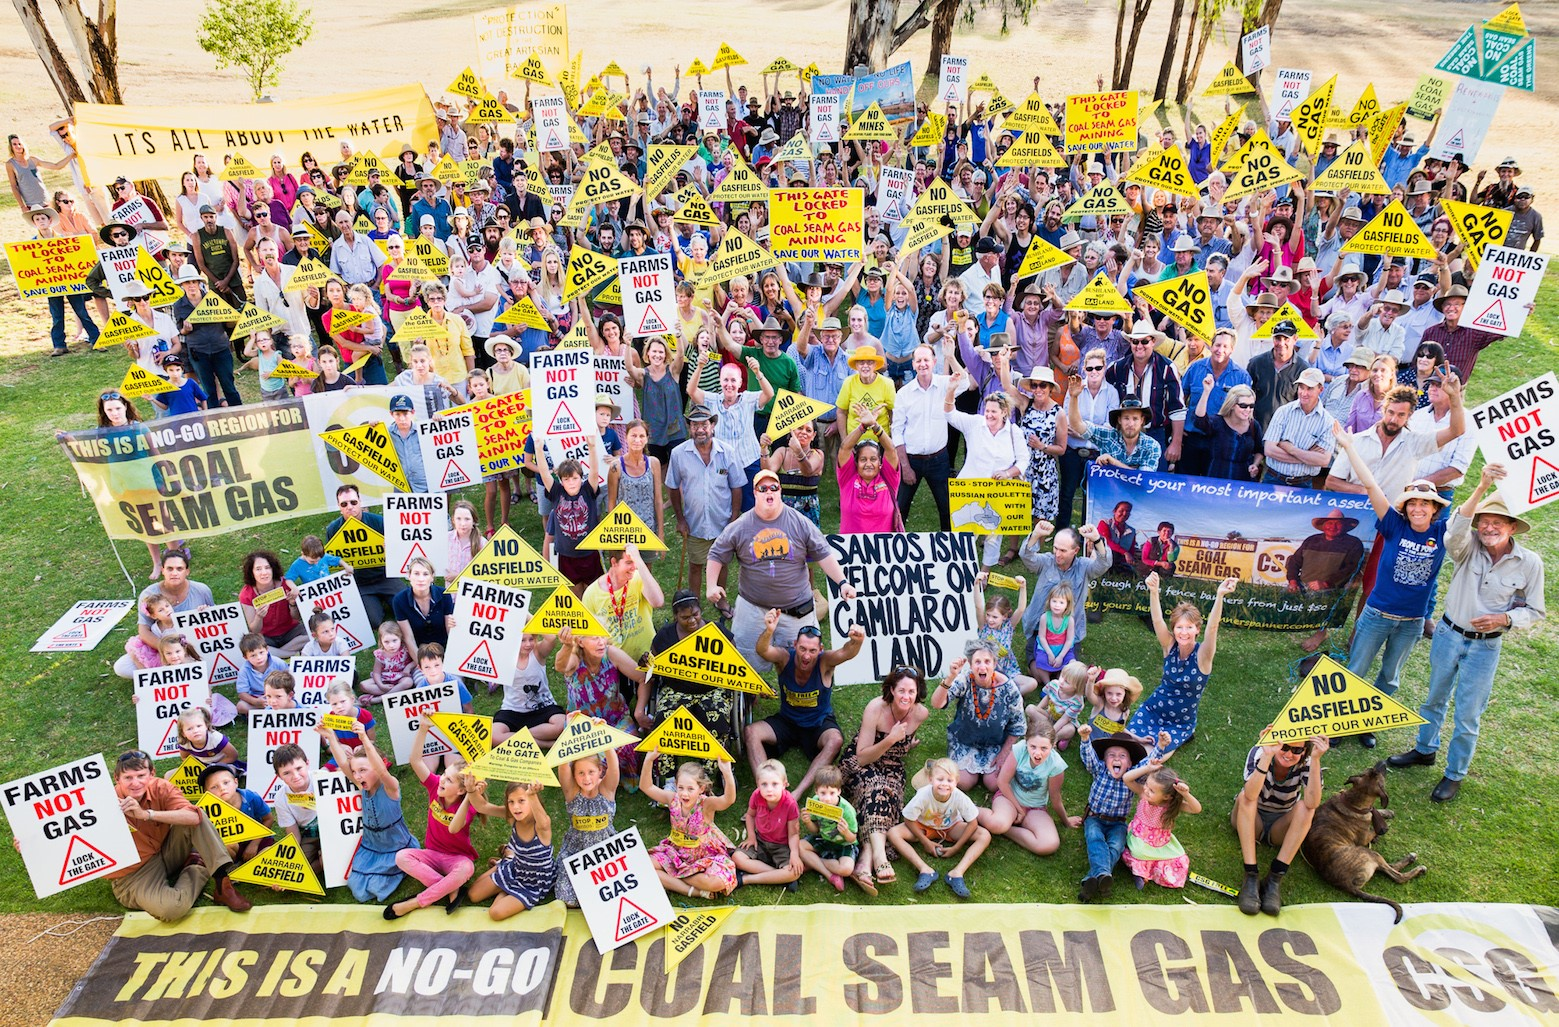 NSW Nationals fail to stand up for water and regional communities in their support for coal seam gas